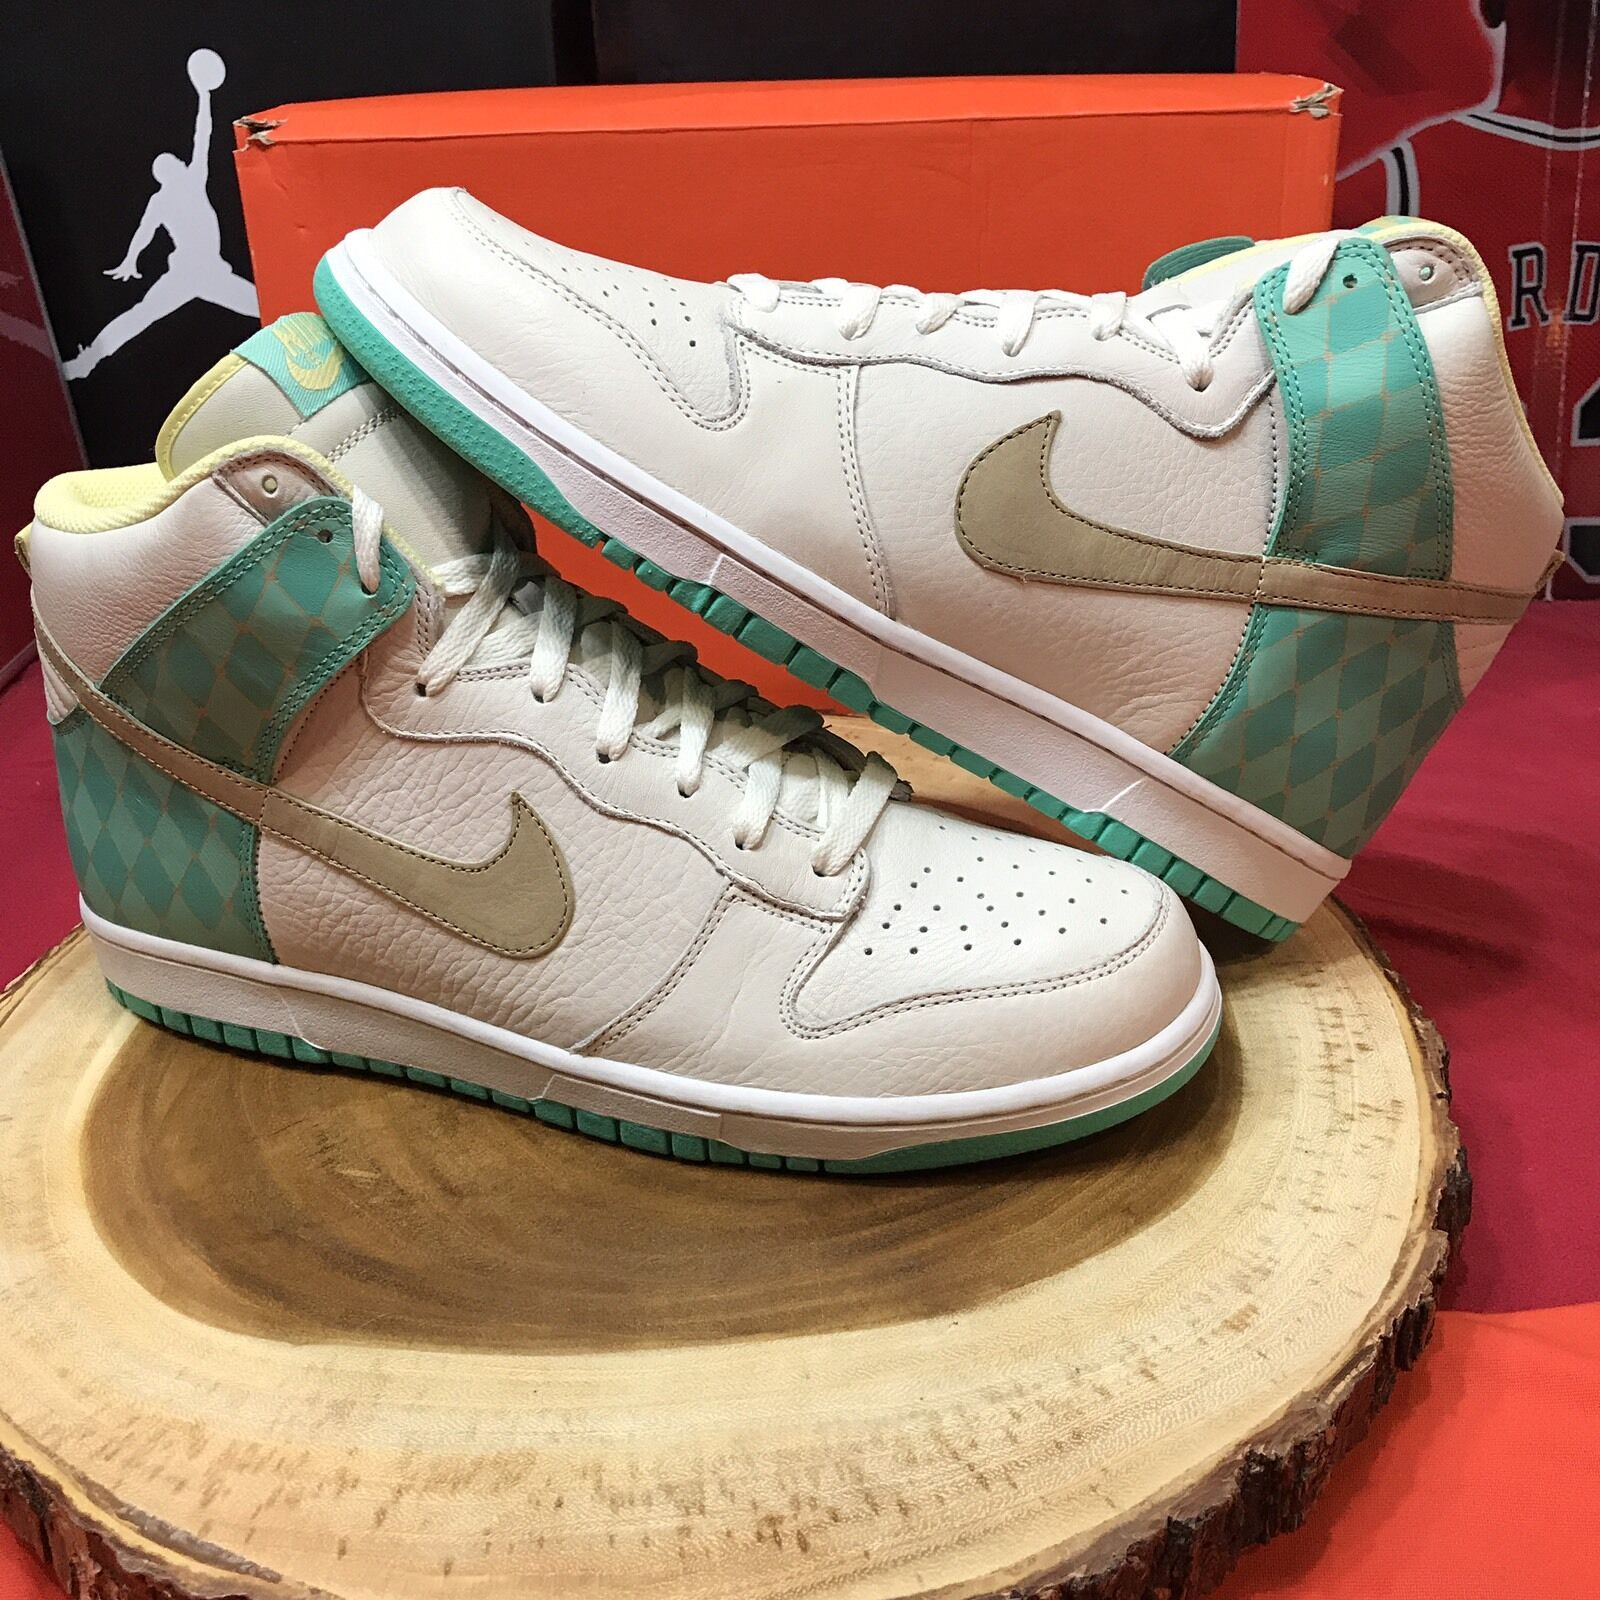 Nike Dunk High Premium Sail/Tweed-Azure 312786-121 Comfortable New shoes for men and women, limited time discount